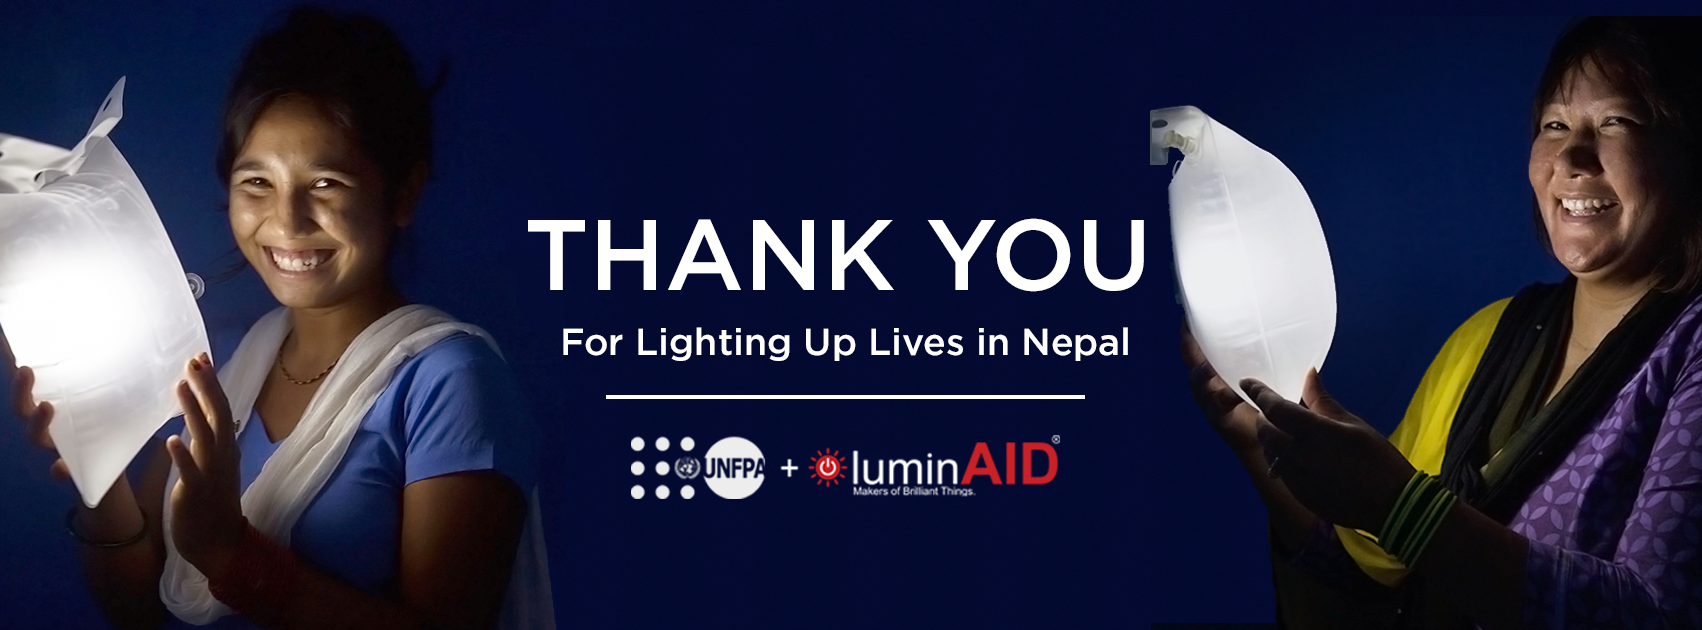 Shining Light on Nepal: Give Light, Get Light Update from UNFPA and LuminAID